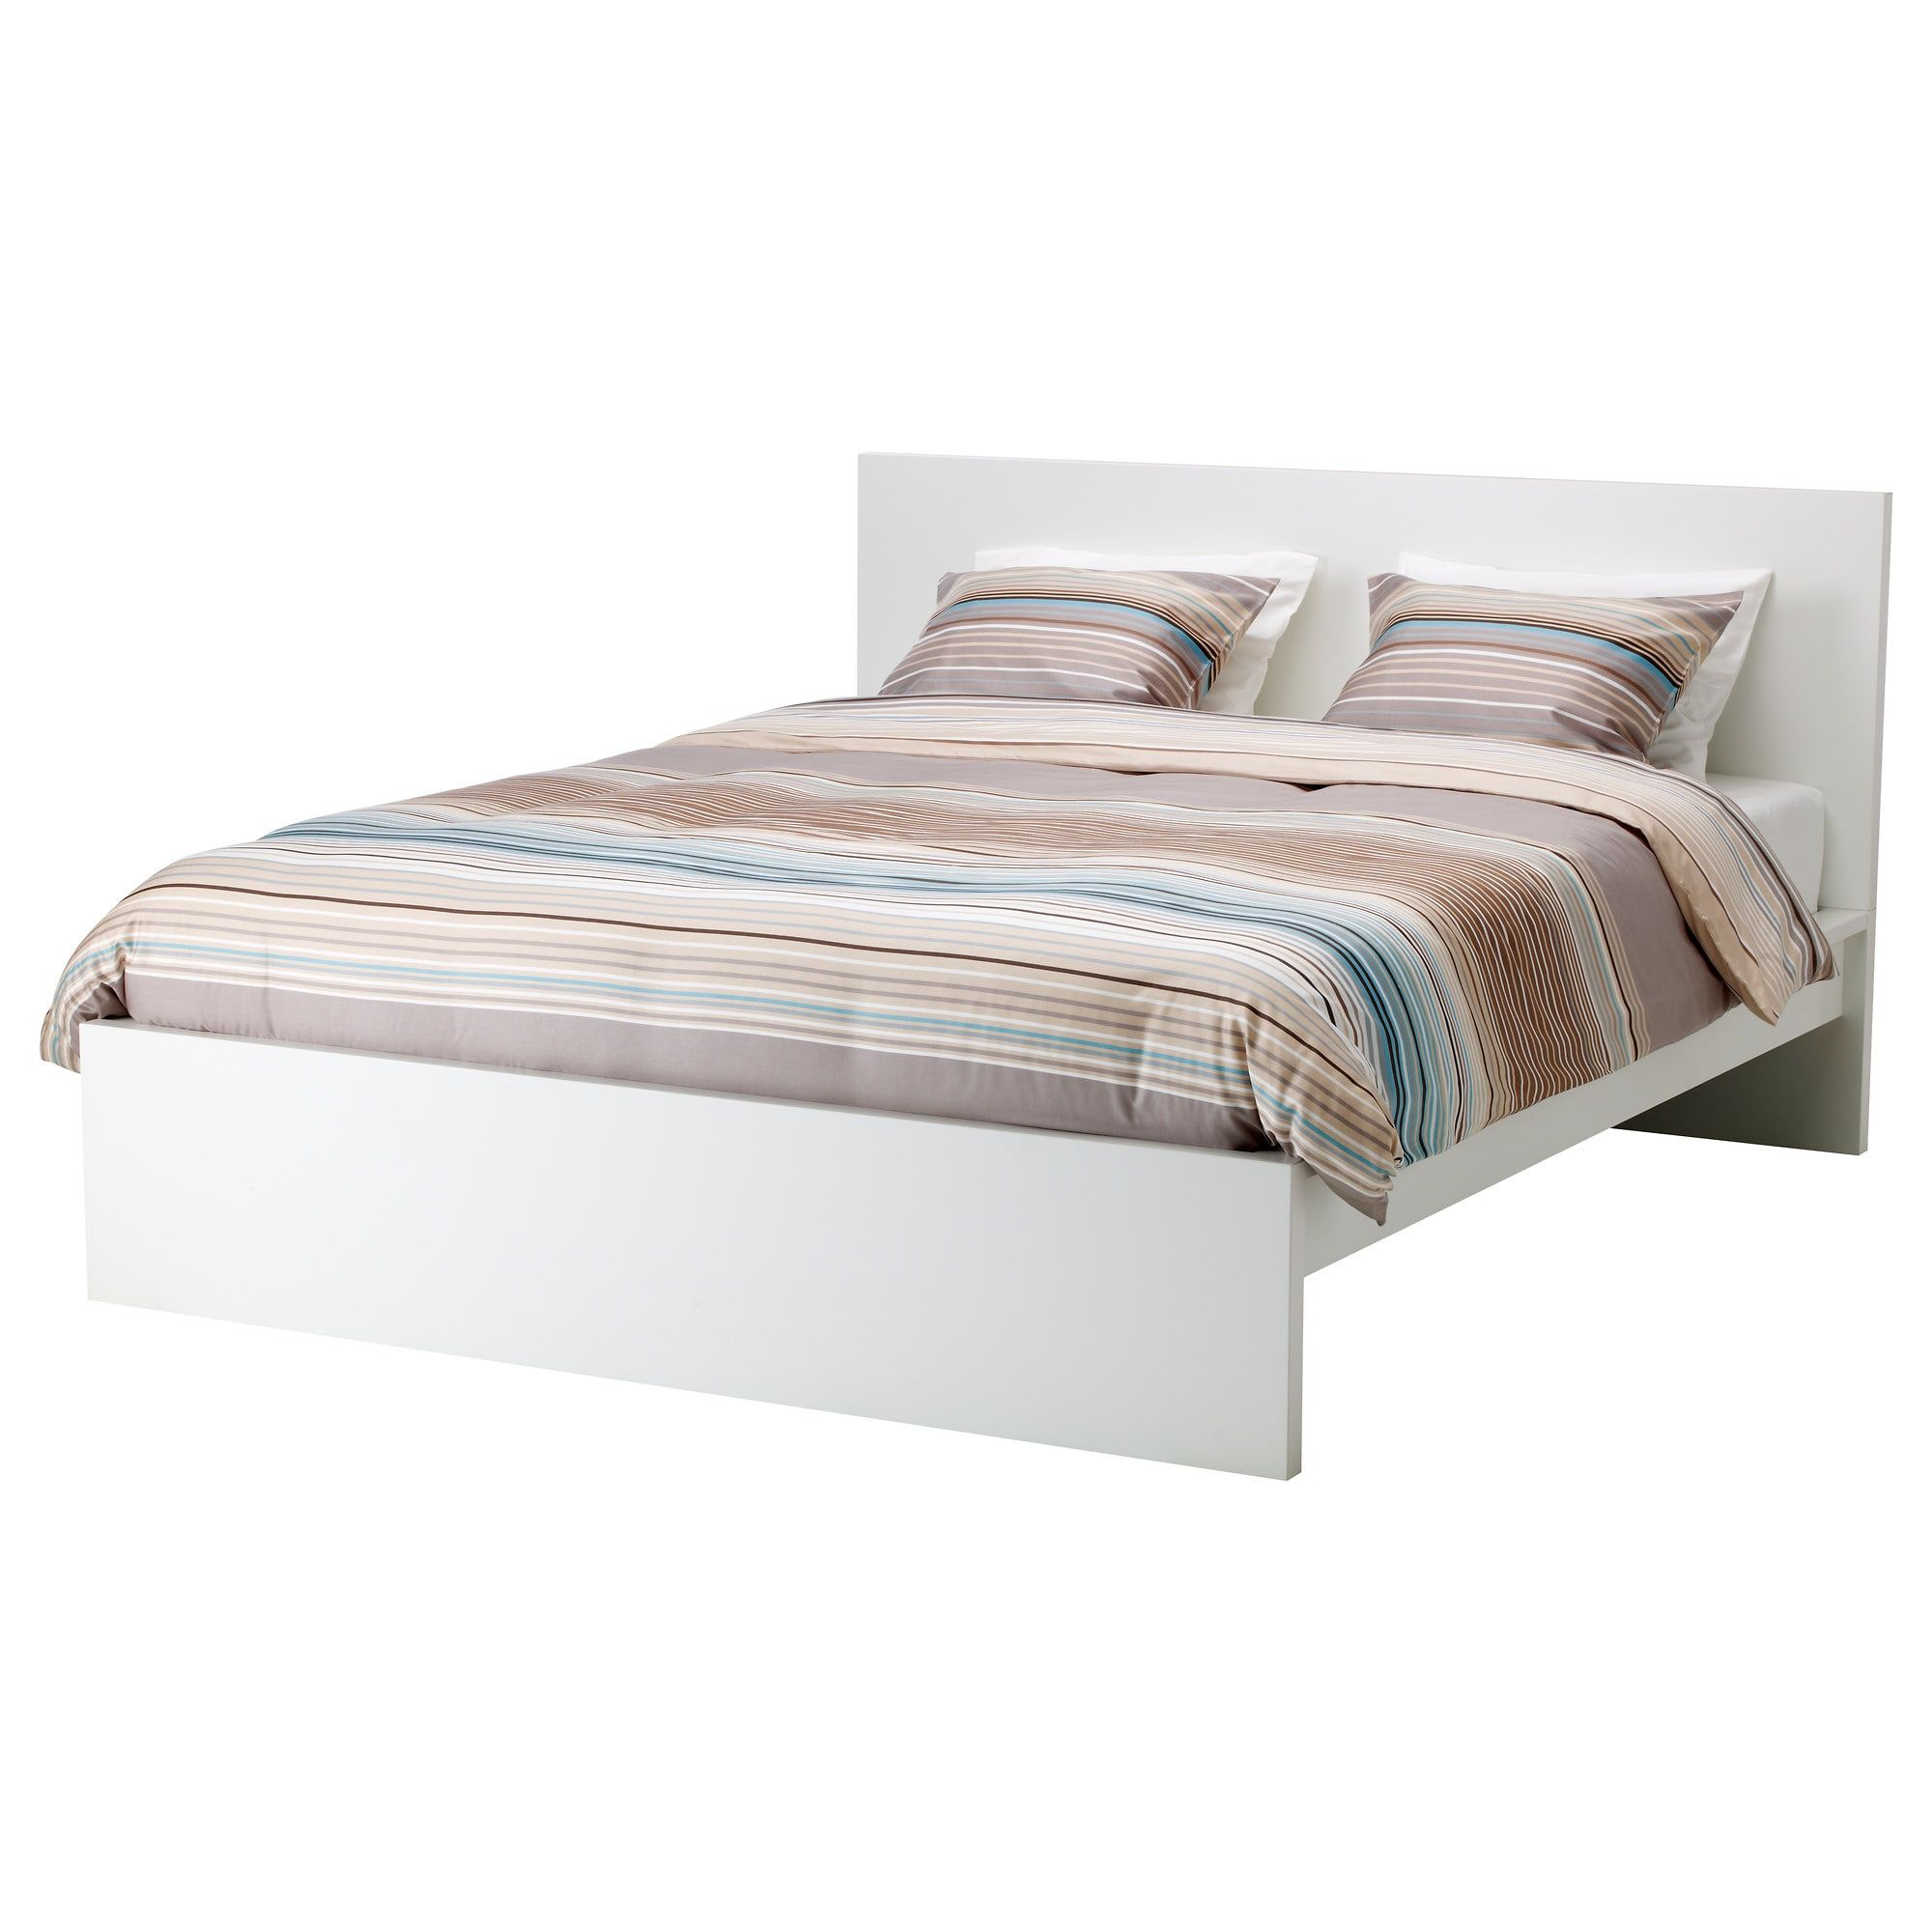 Malm Bed Frame High White Queen Malm Bed Frame White Bed